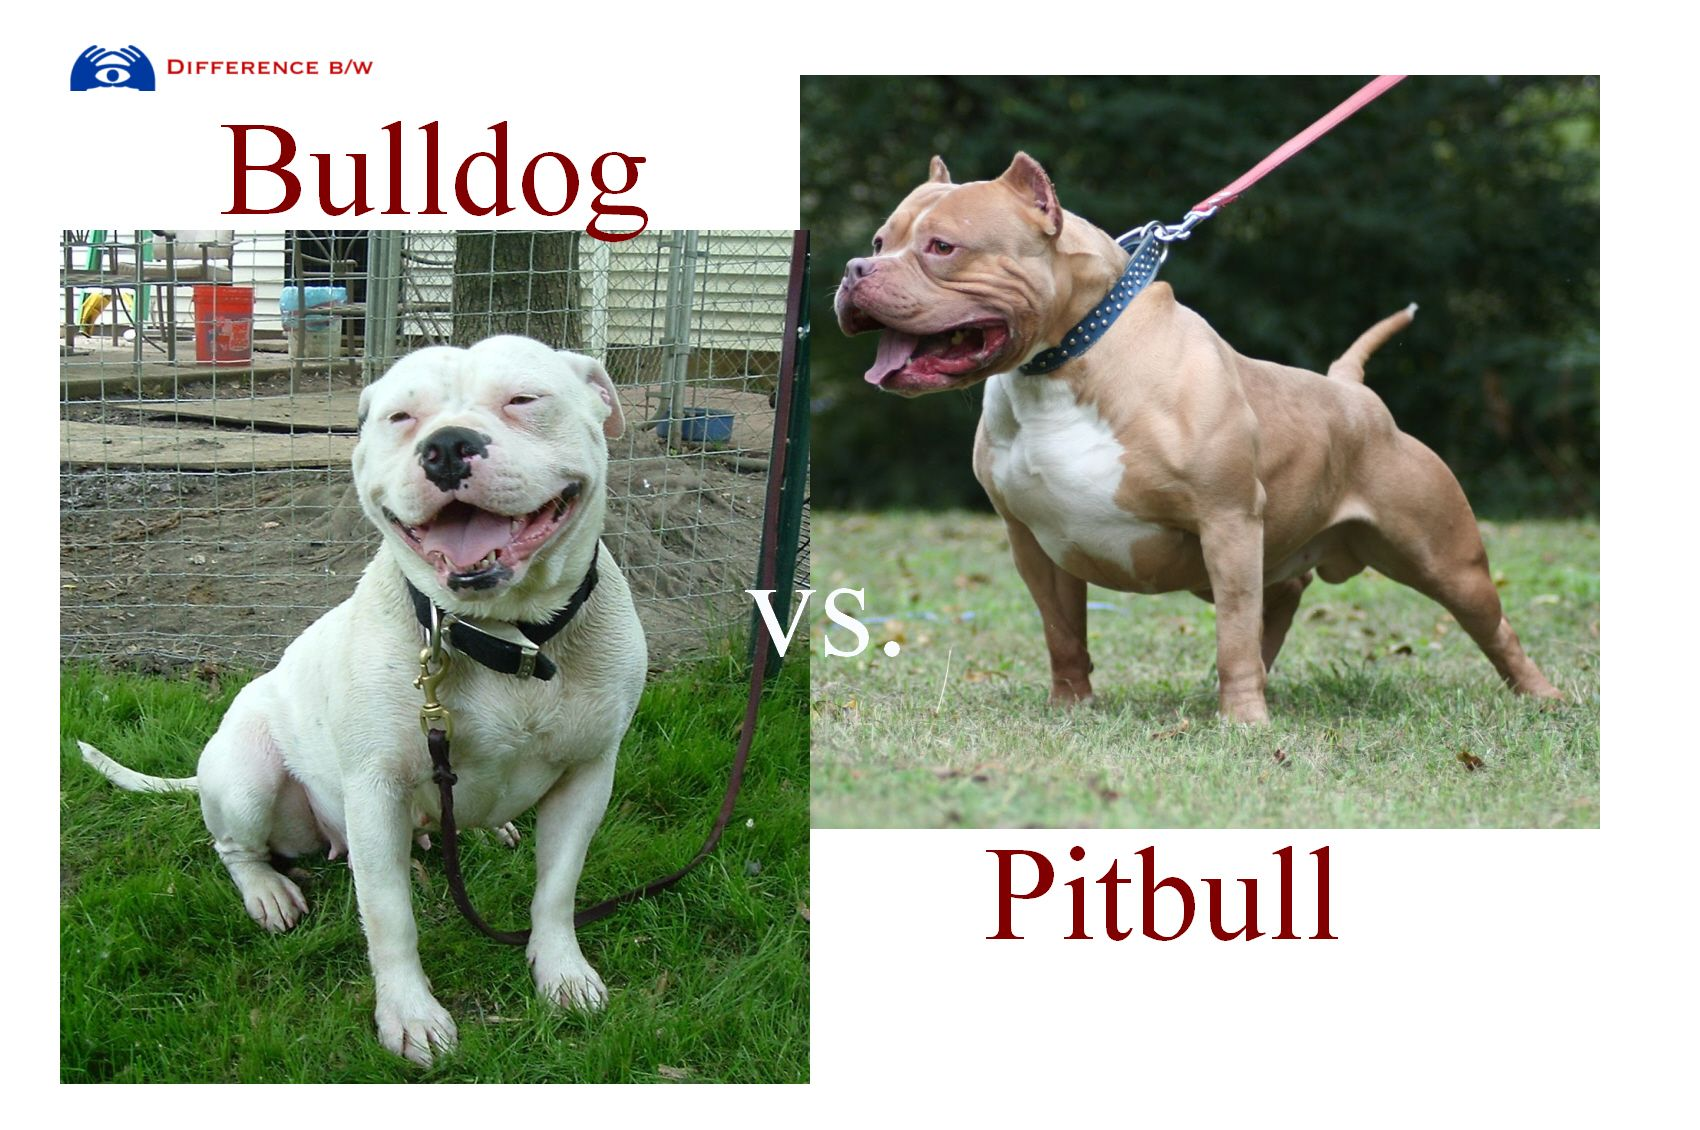 american bulldog vs pitbull difference Google Search